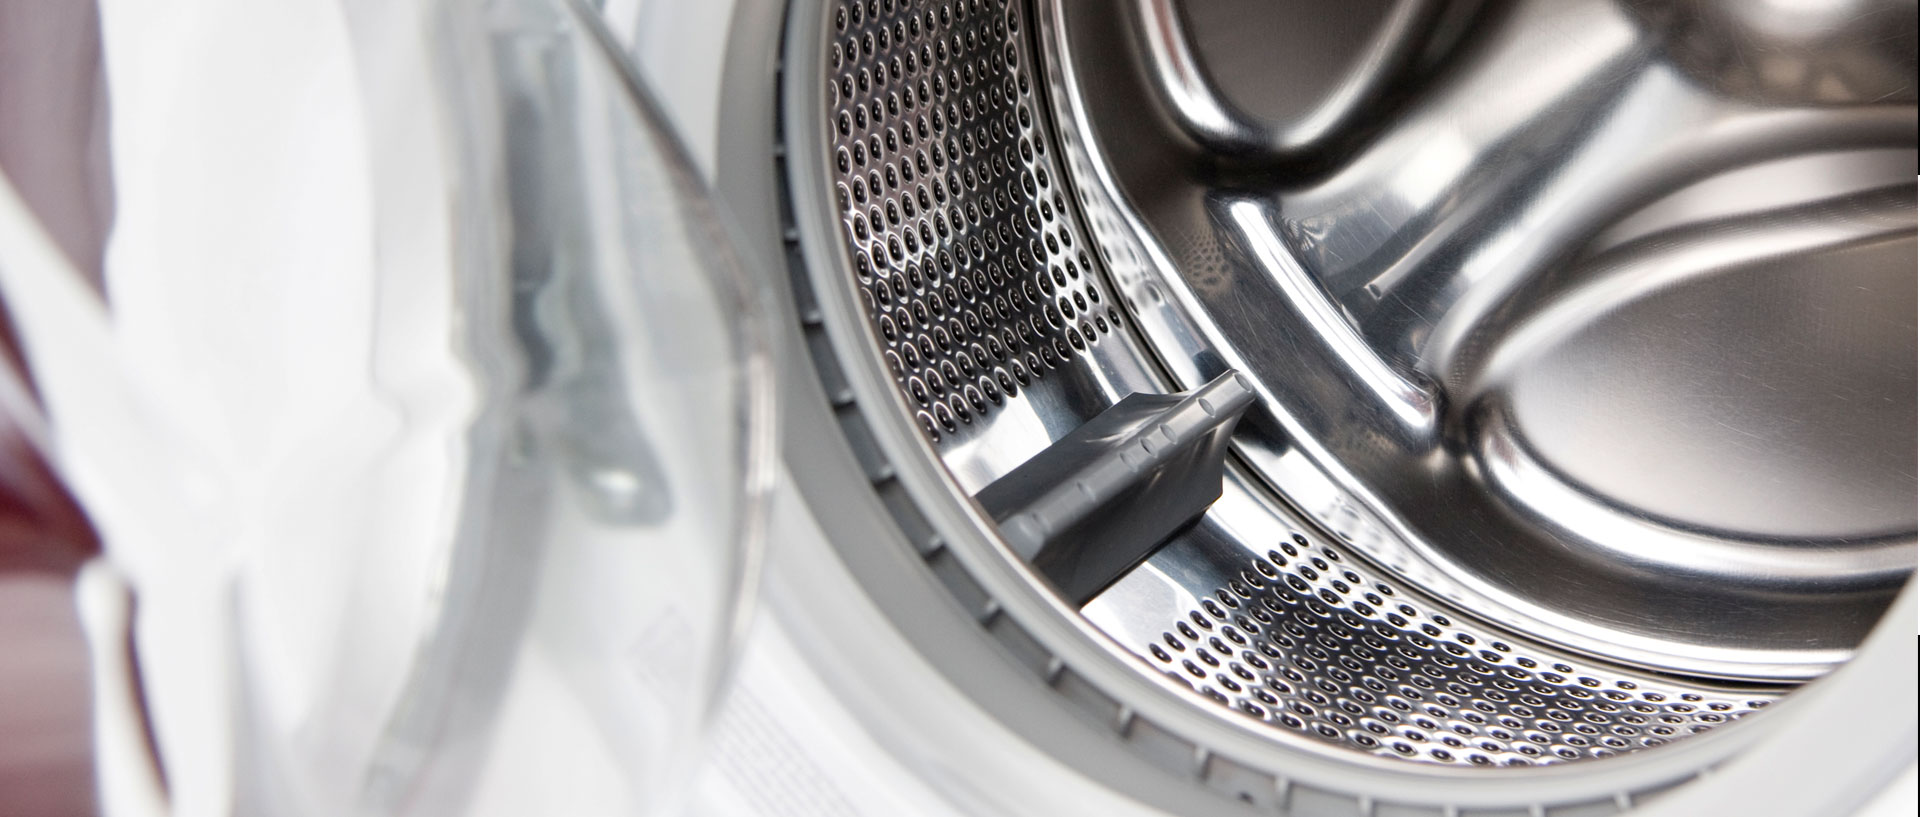 Top Load Washers With Agitators Why A Front Loader Uses So Little Water Consumer Reports